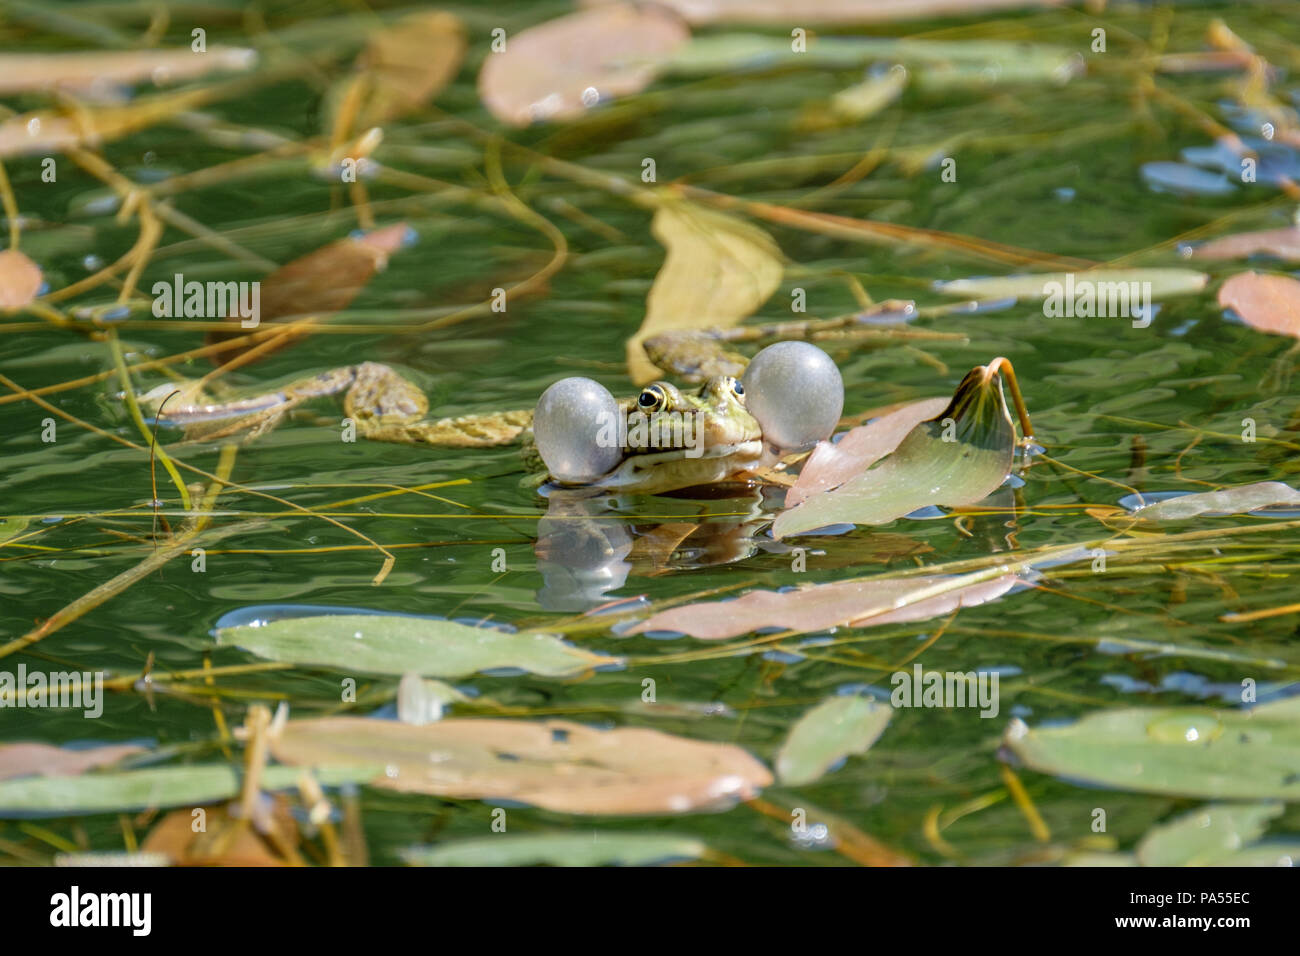 The vocal sacs of a male frog. Frogs in a beautiful clear fresh water pond in Switzerland - Stock Image